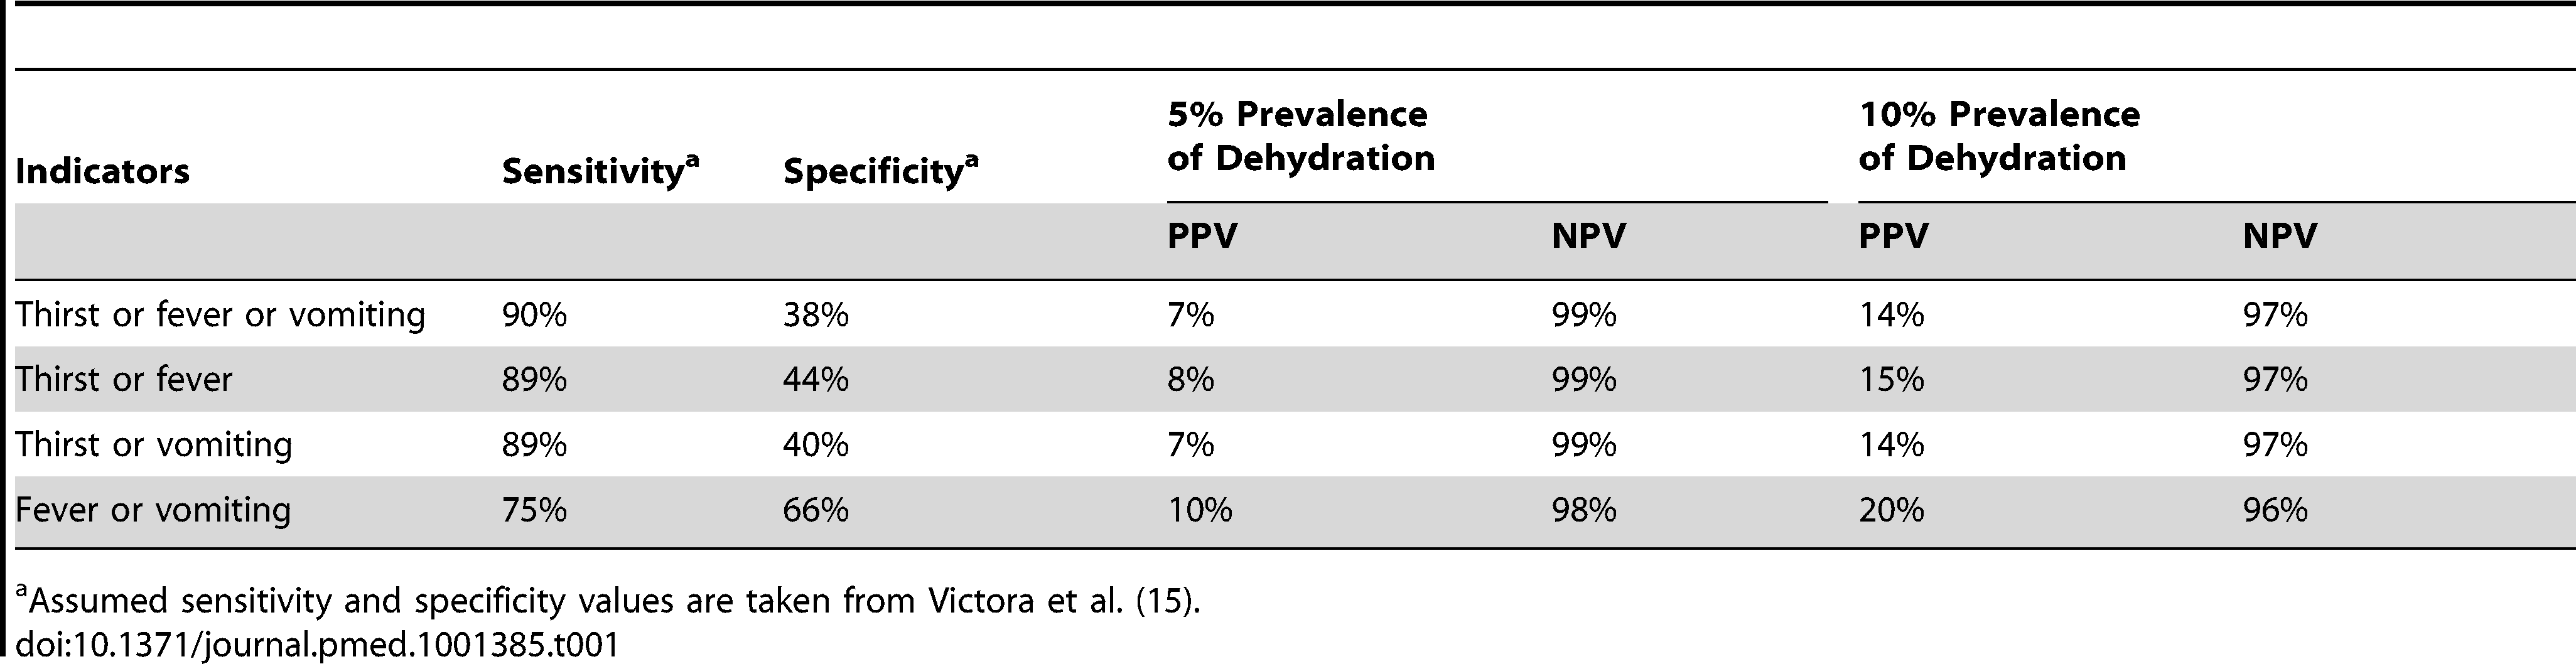 Range of diagnostic values for dehydration from diarrhea based on selected severity indicators.